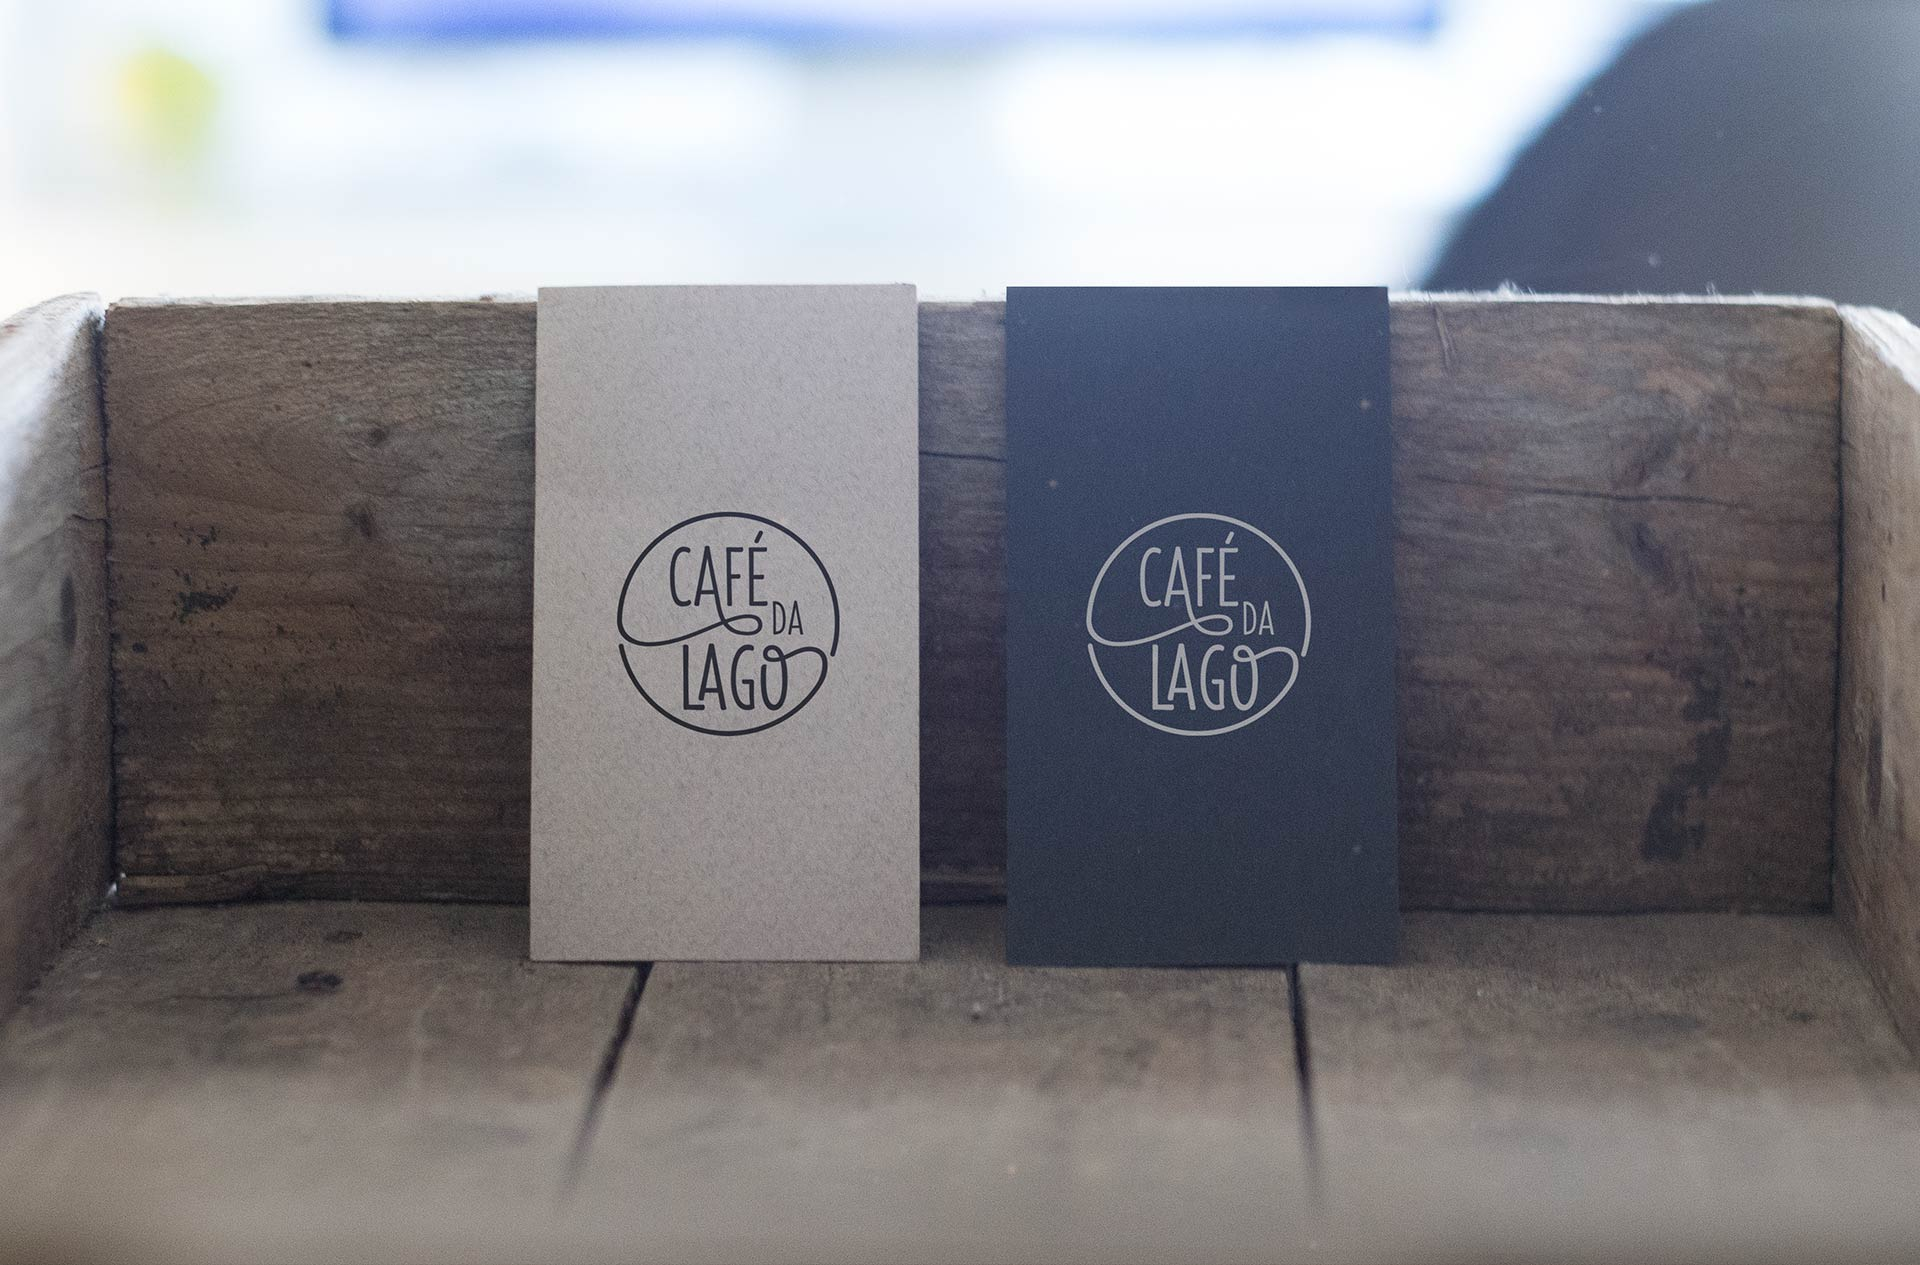 Cafe da Lago Business Card Design